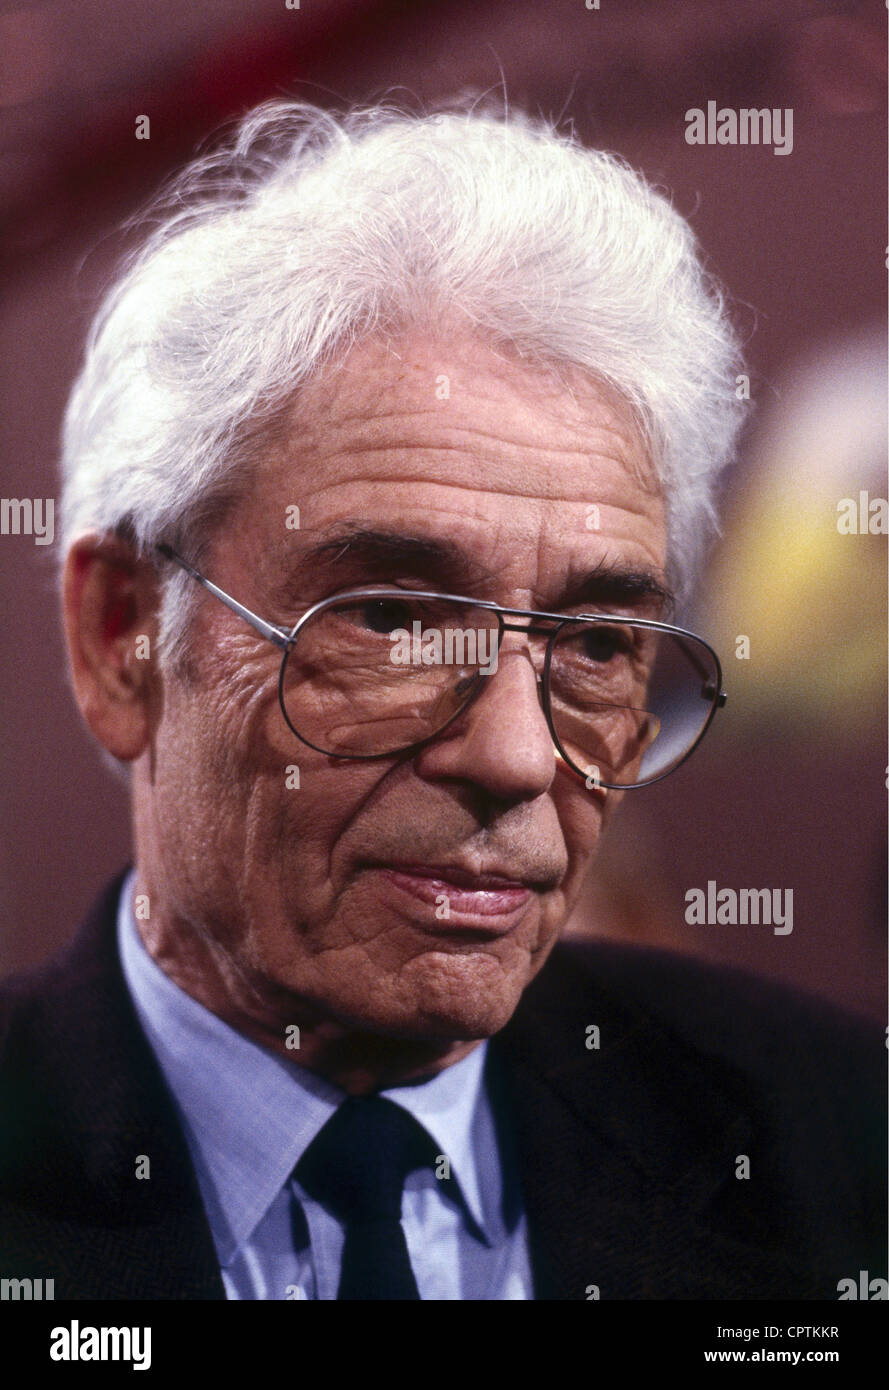 Richter, Horst-Eberhard, 28.4.1923 - 19.12.2011, German psychoanalyst, portrait, 1993, Additional-Rights-Clearances - Stock Image